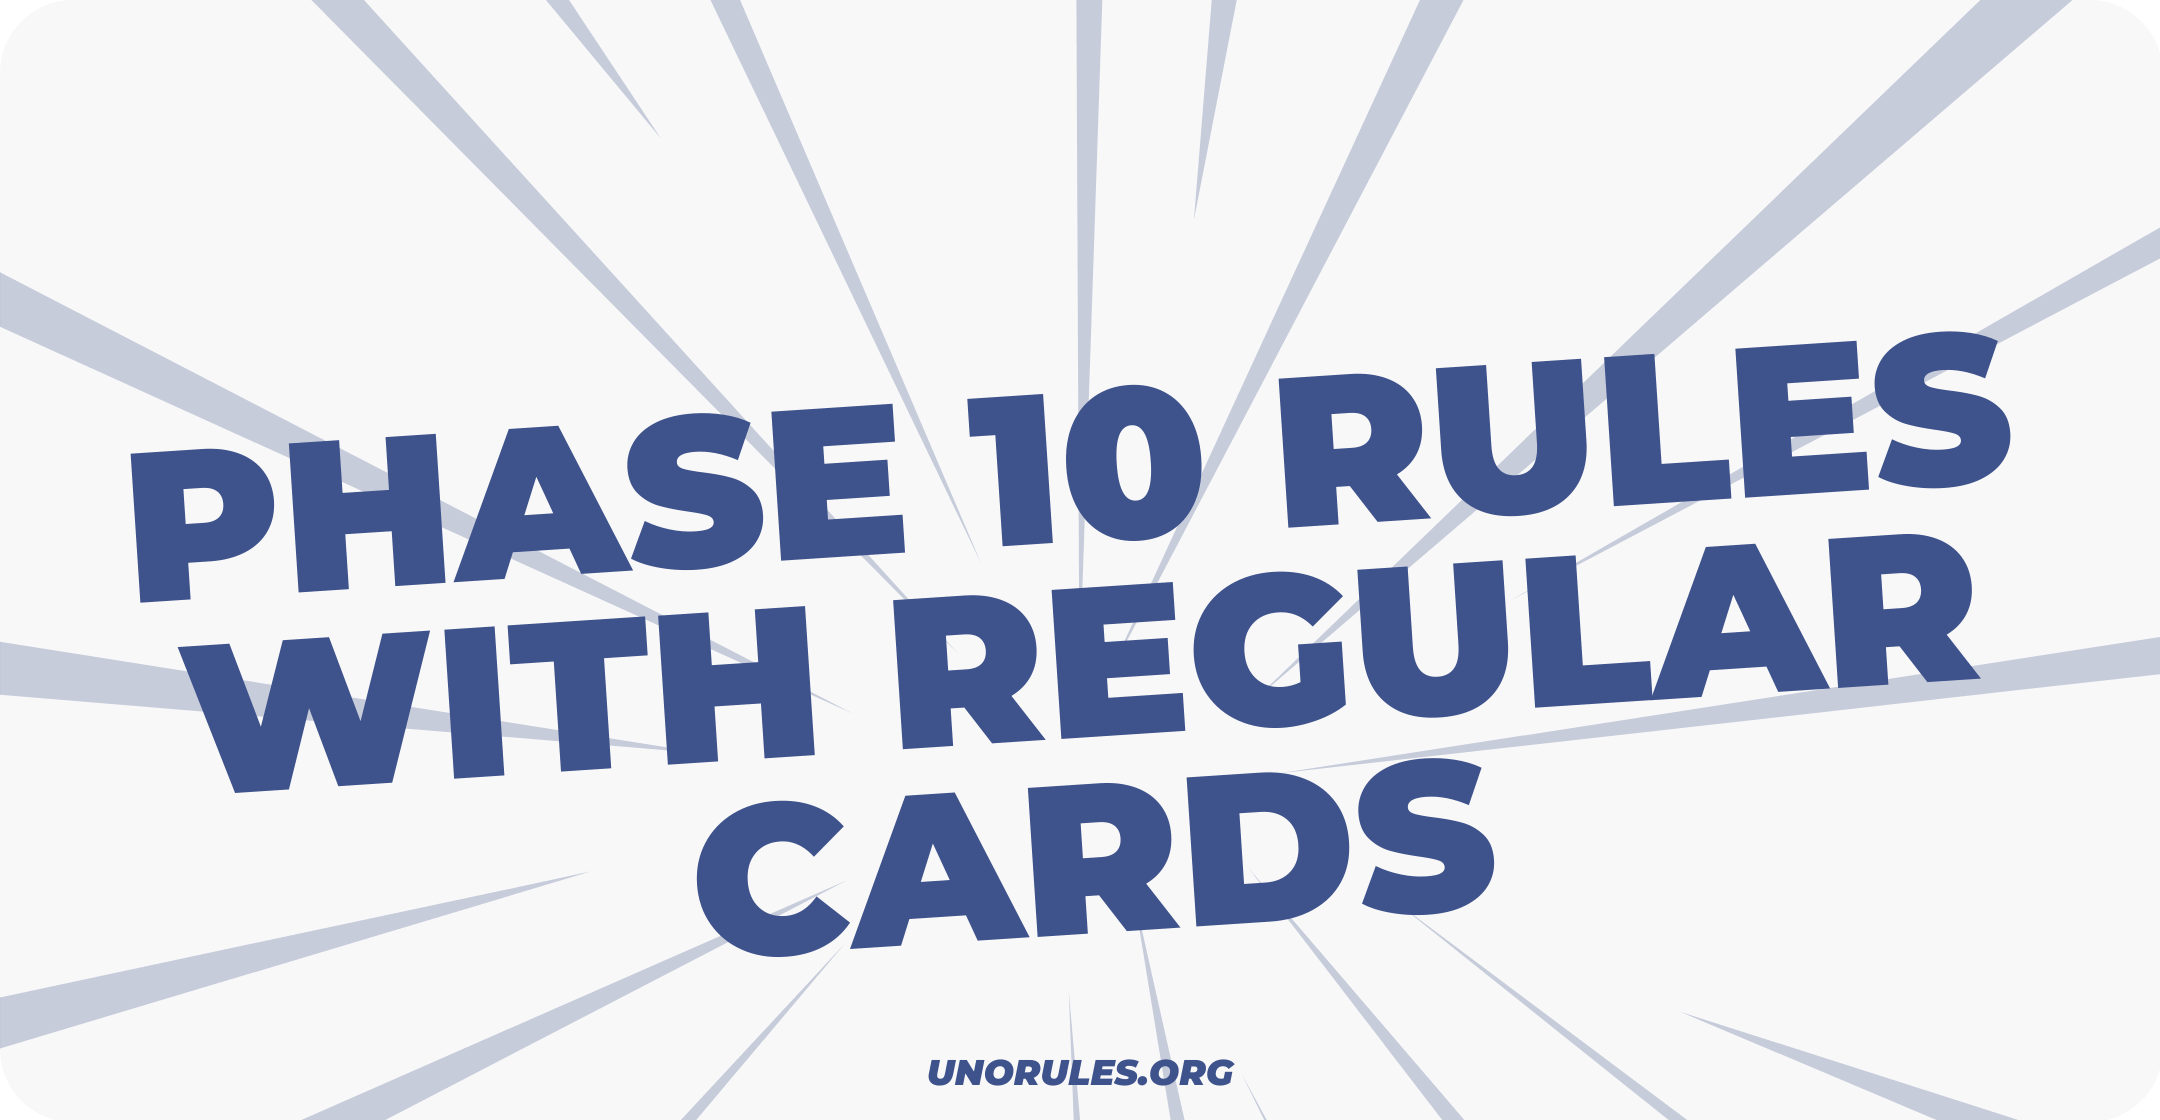 The Phase 10 rules with regular cards